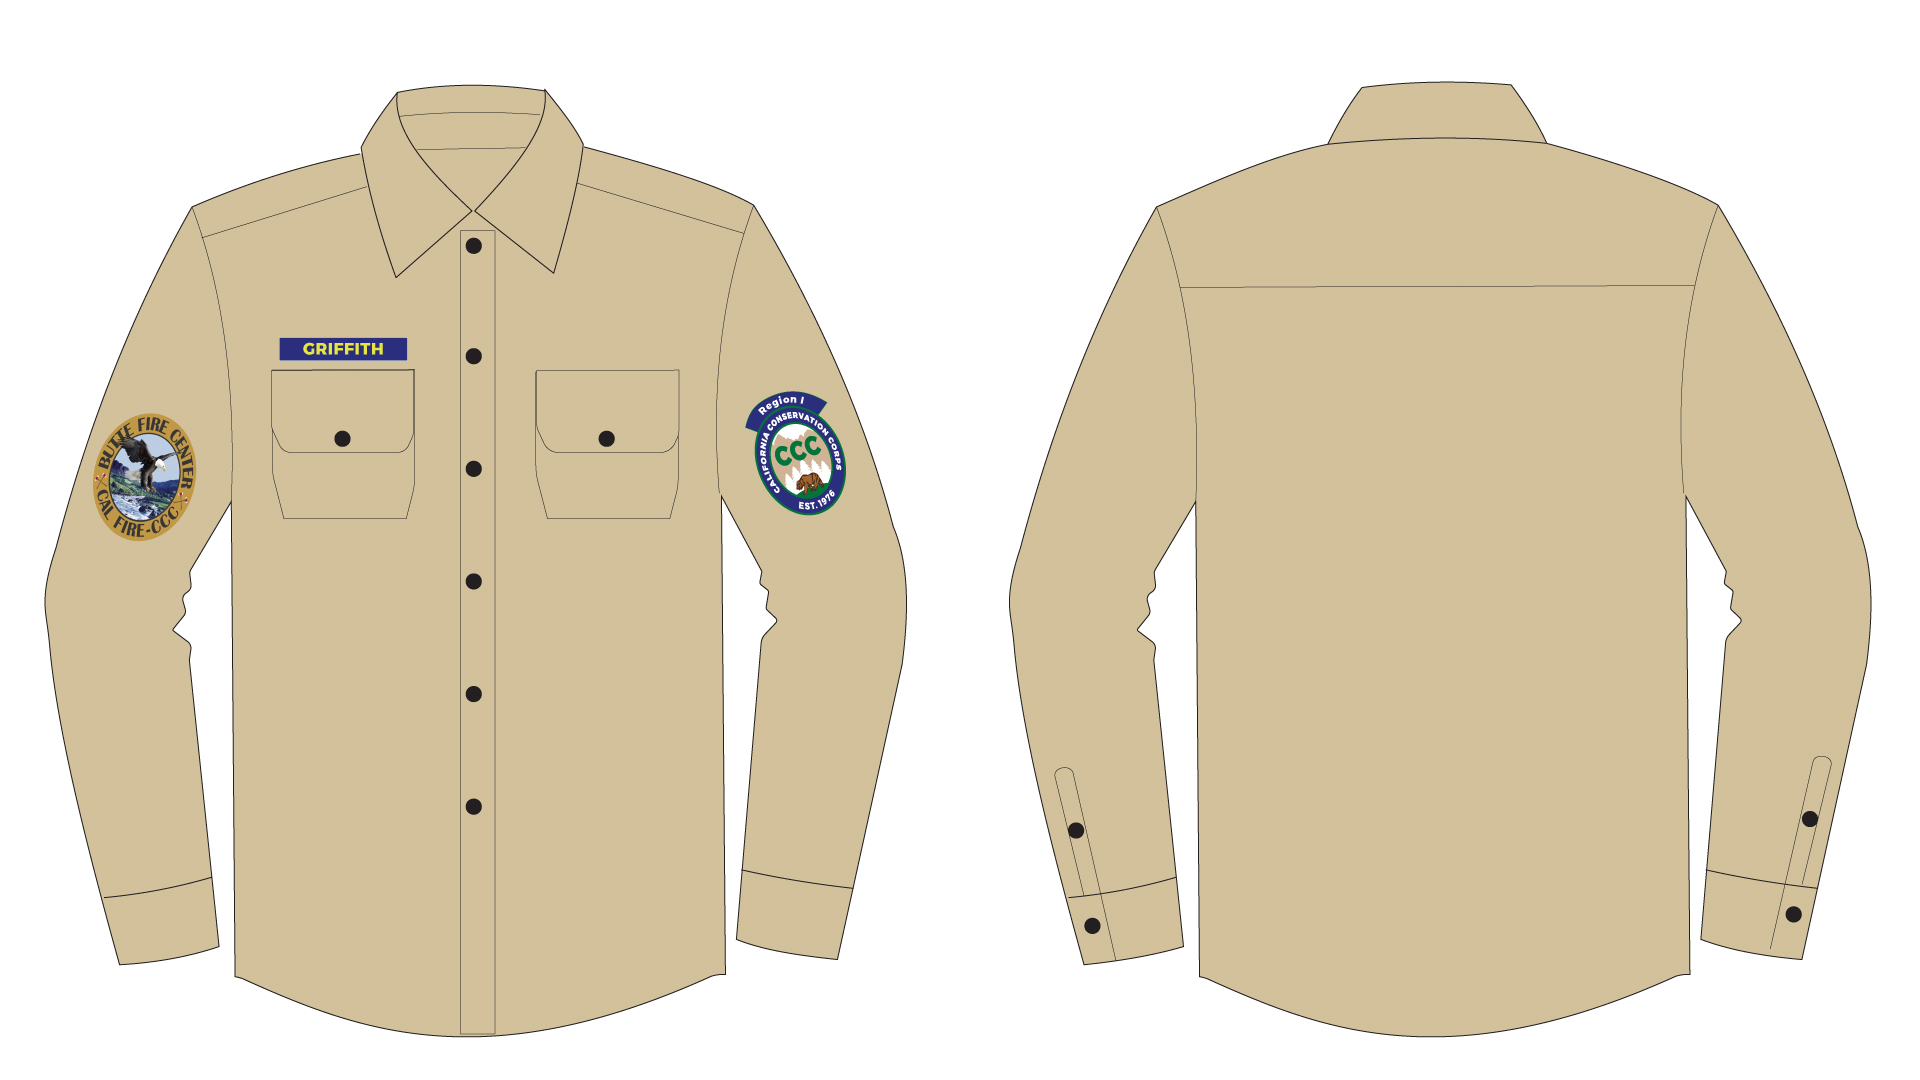 A graphic of the CCC shirt uniform. It is a brown collared button-down longsleeve shirt. The CCC logo patch is on the shirt's left arm. The Center patch is on the right arm. There is a nametag over the right breast pocket.